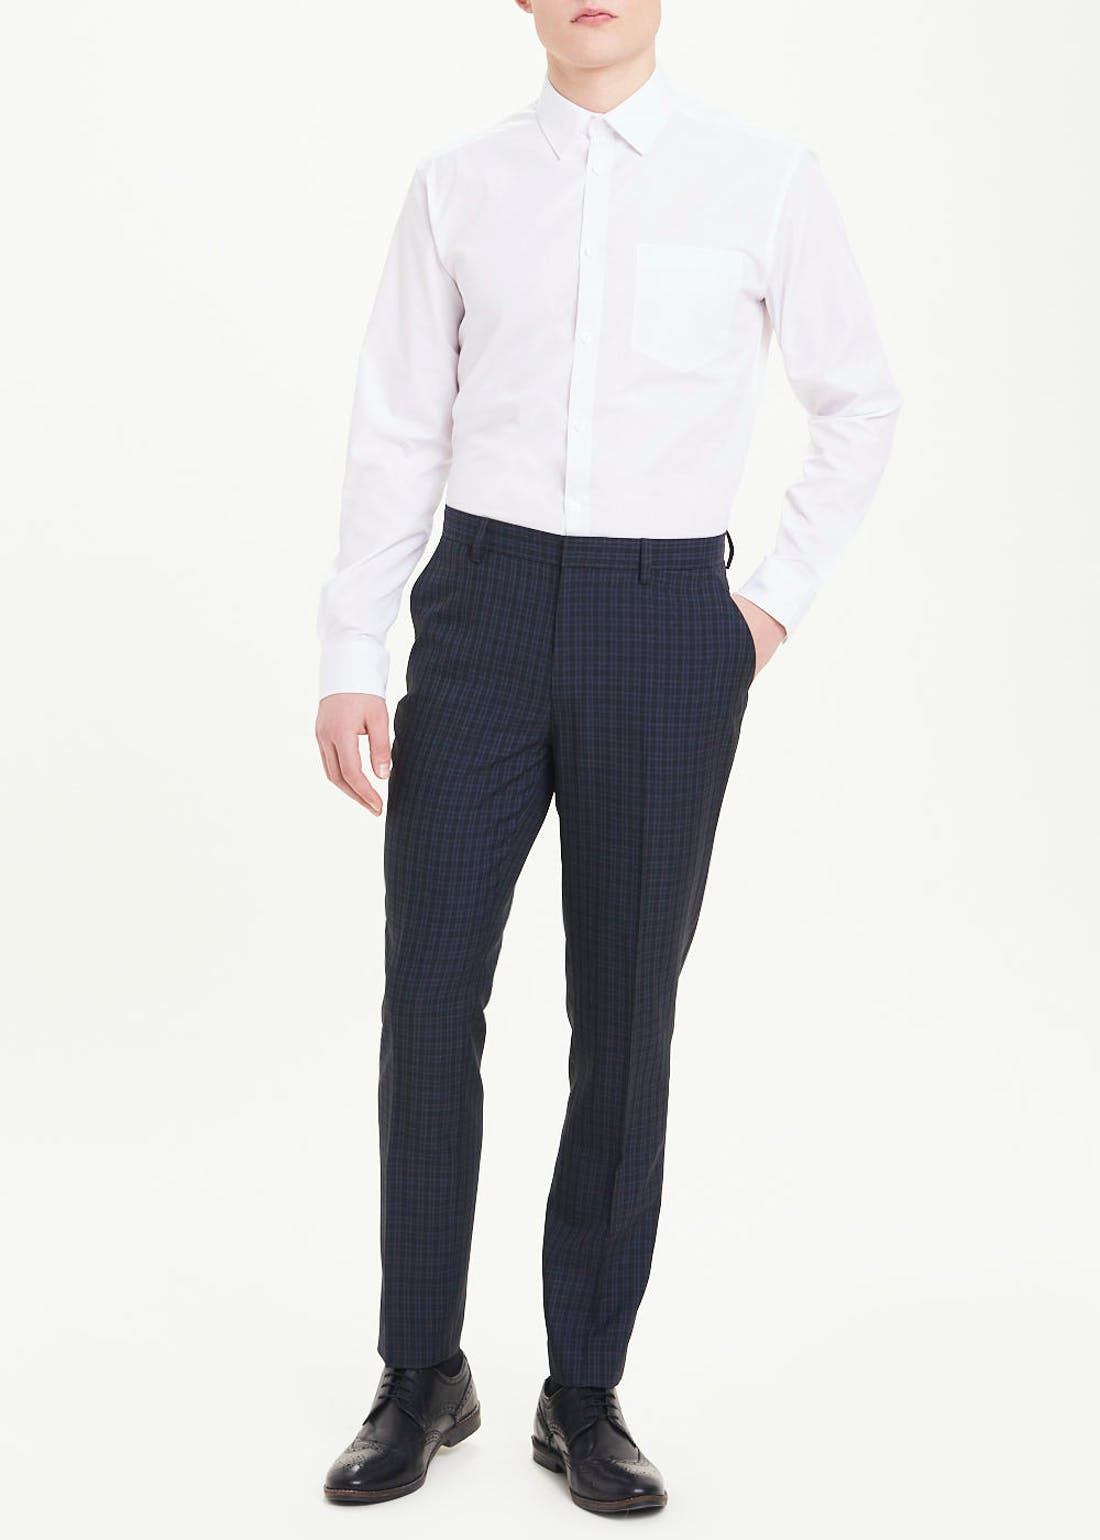 Taylor & Wright Calder Skinny Fit Check Trousers